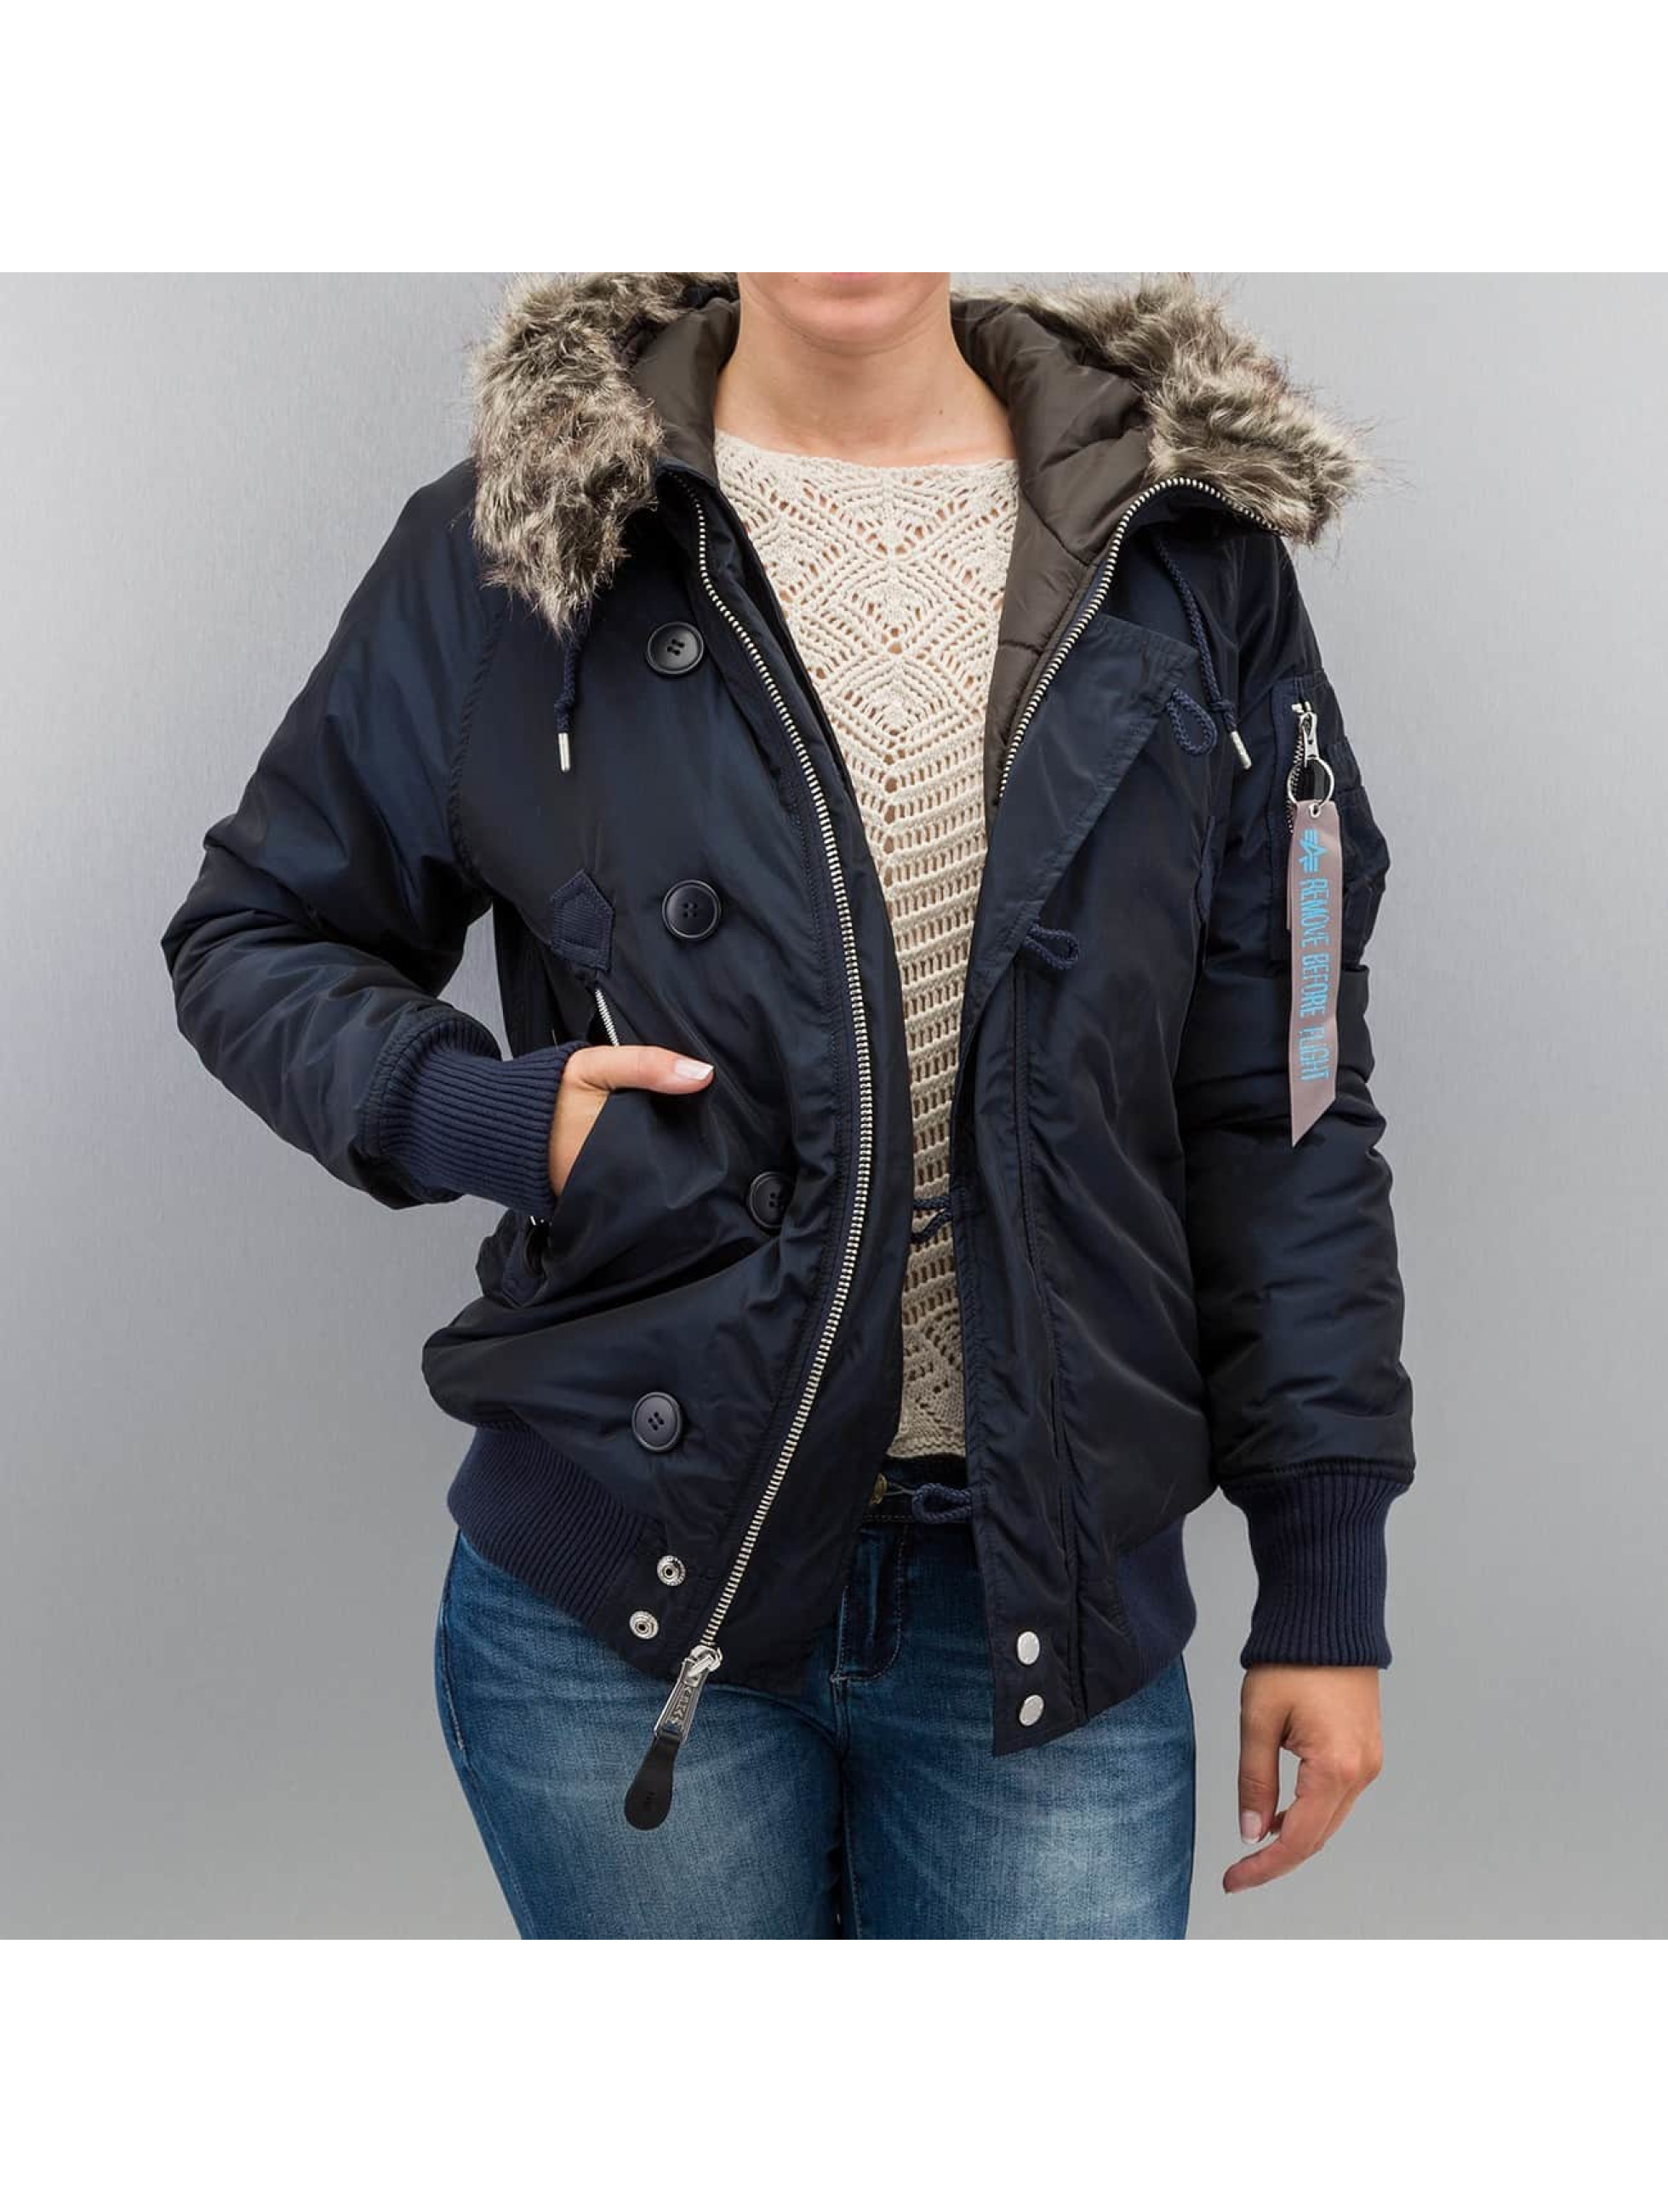 alpha industries damen jacken winterjacke artic ebay. Black Bedroom Furniture Sets. Home Design Ideas